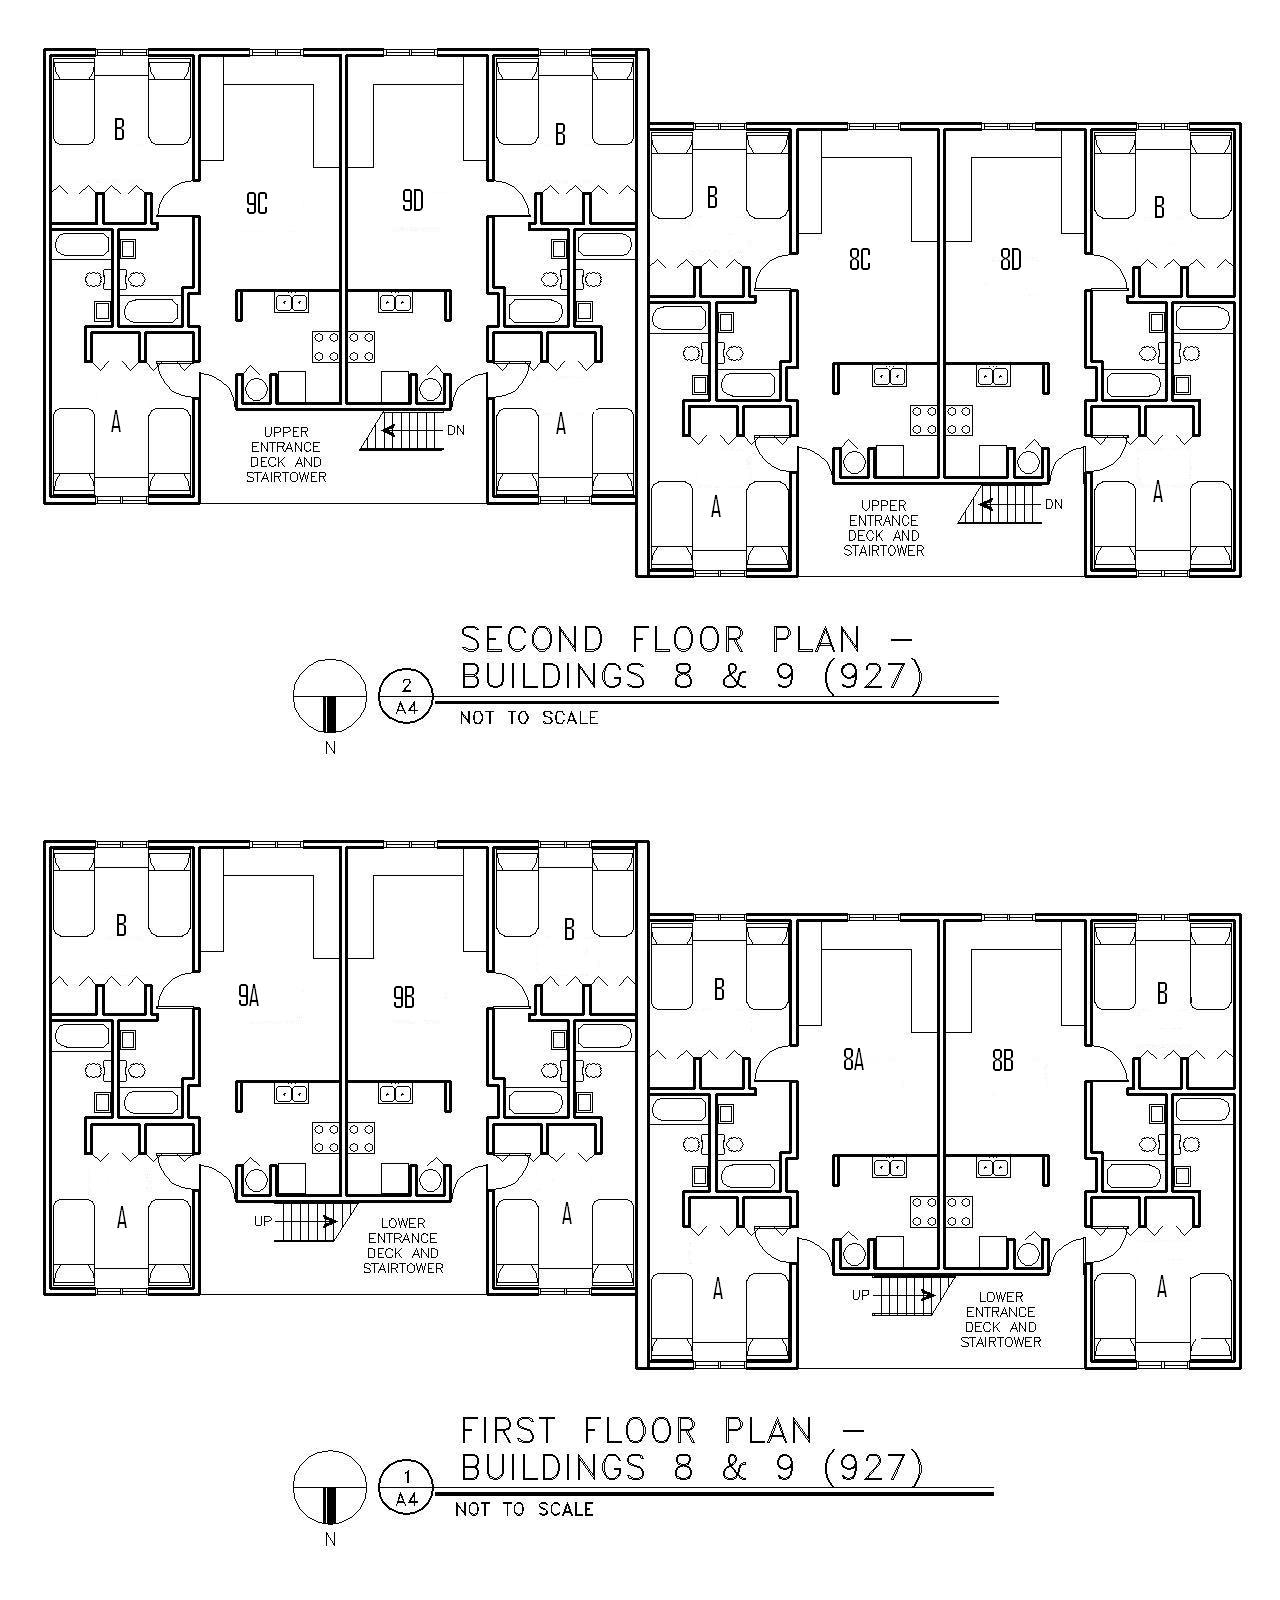 Floor Plan for Buildings 8 & 9